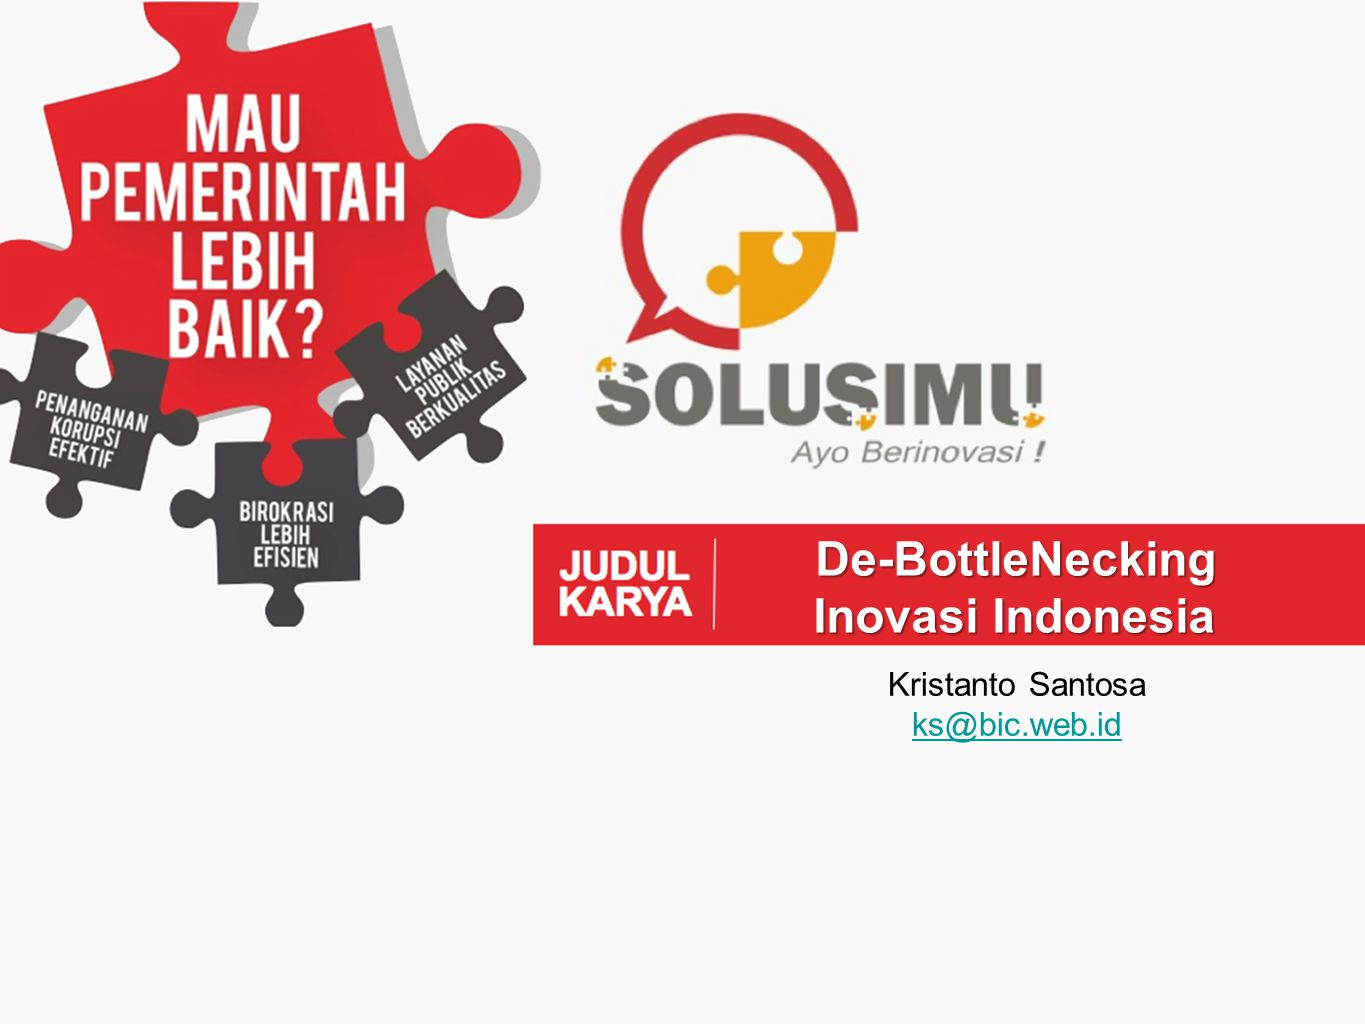 De-BottleNecking Inovasi Indonesia